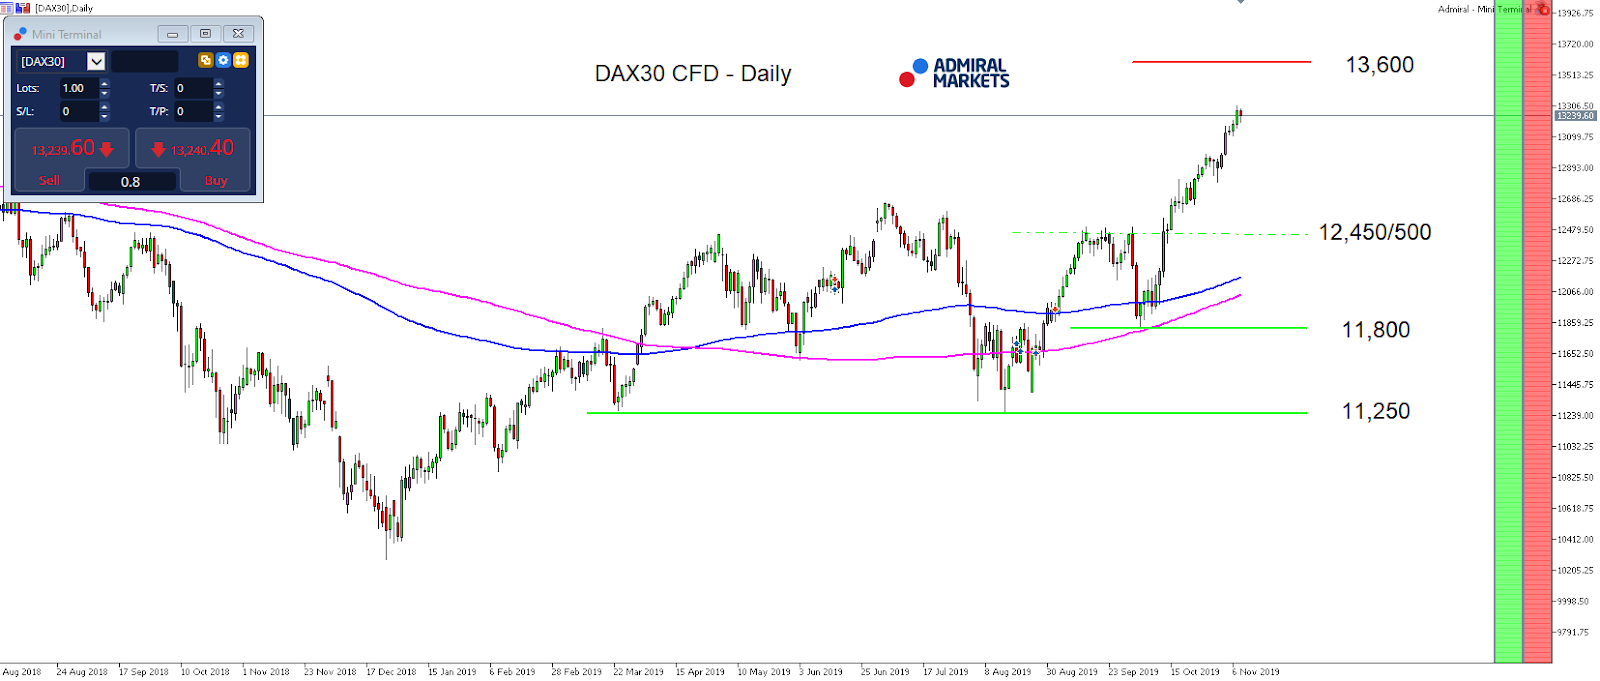 DAX30 CFD- Daily chart